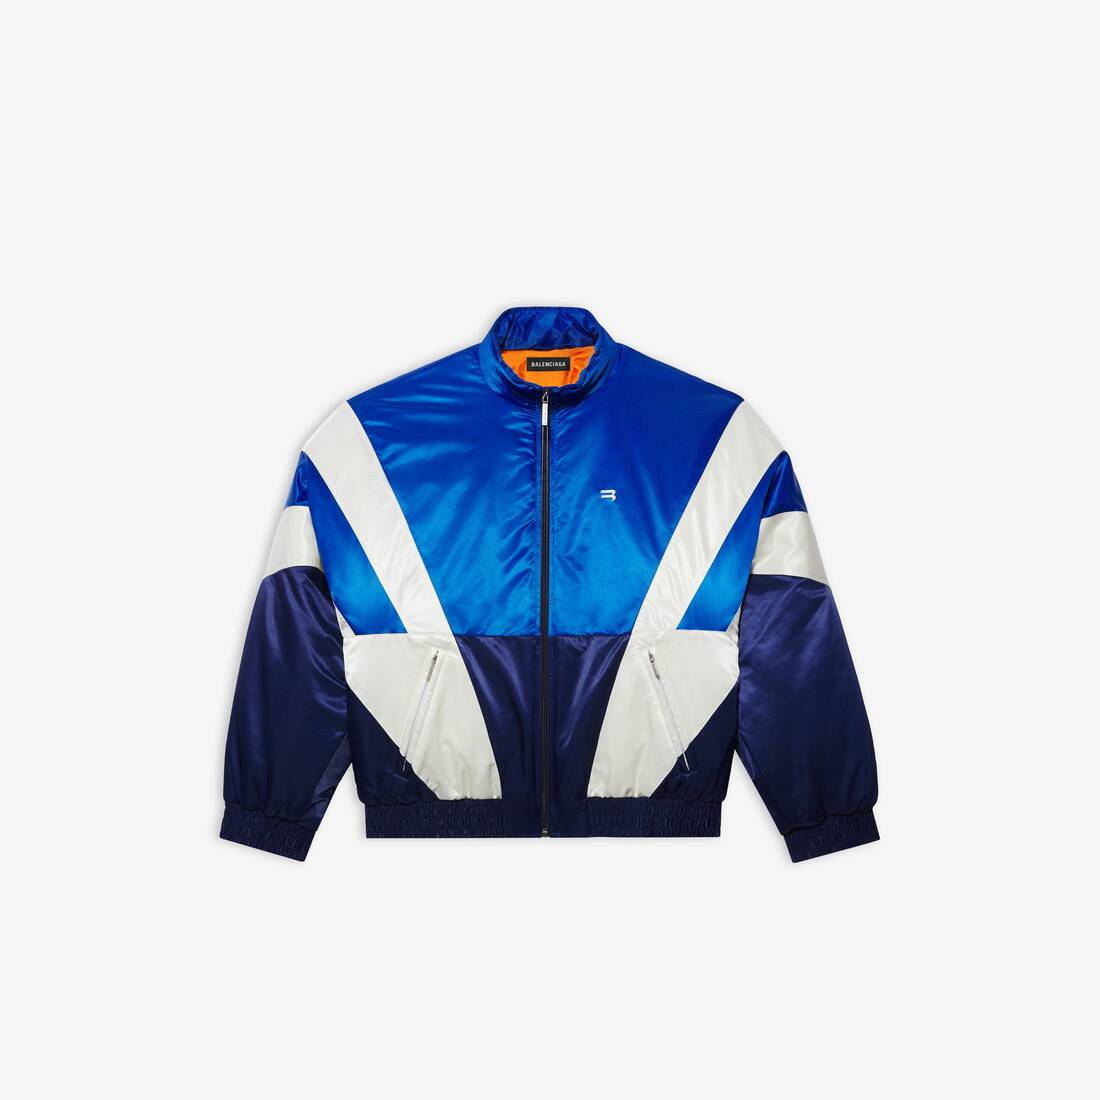 Display zoomed version of padded tracksuit jacket 1